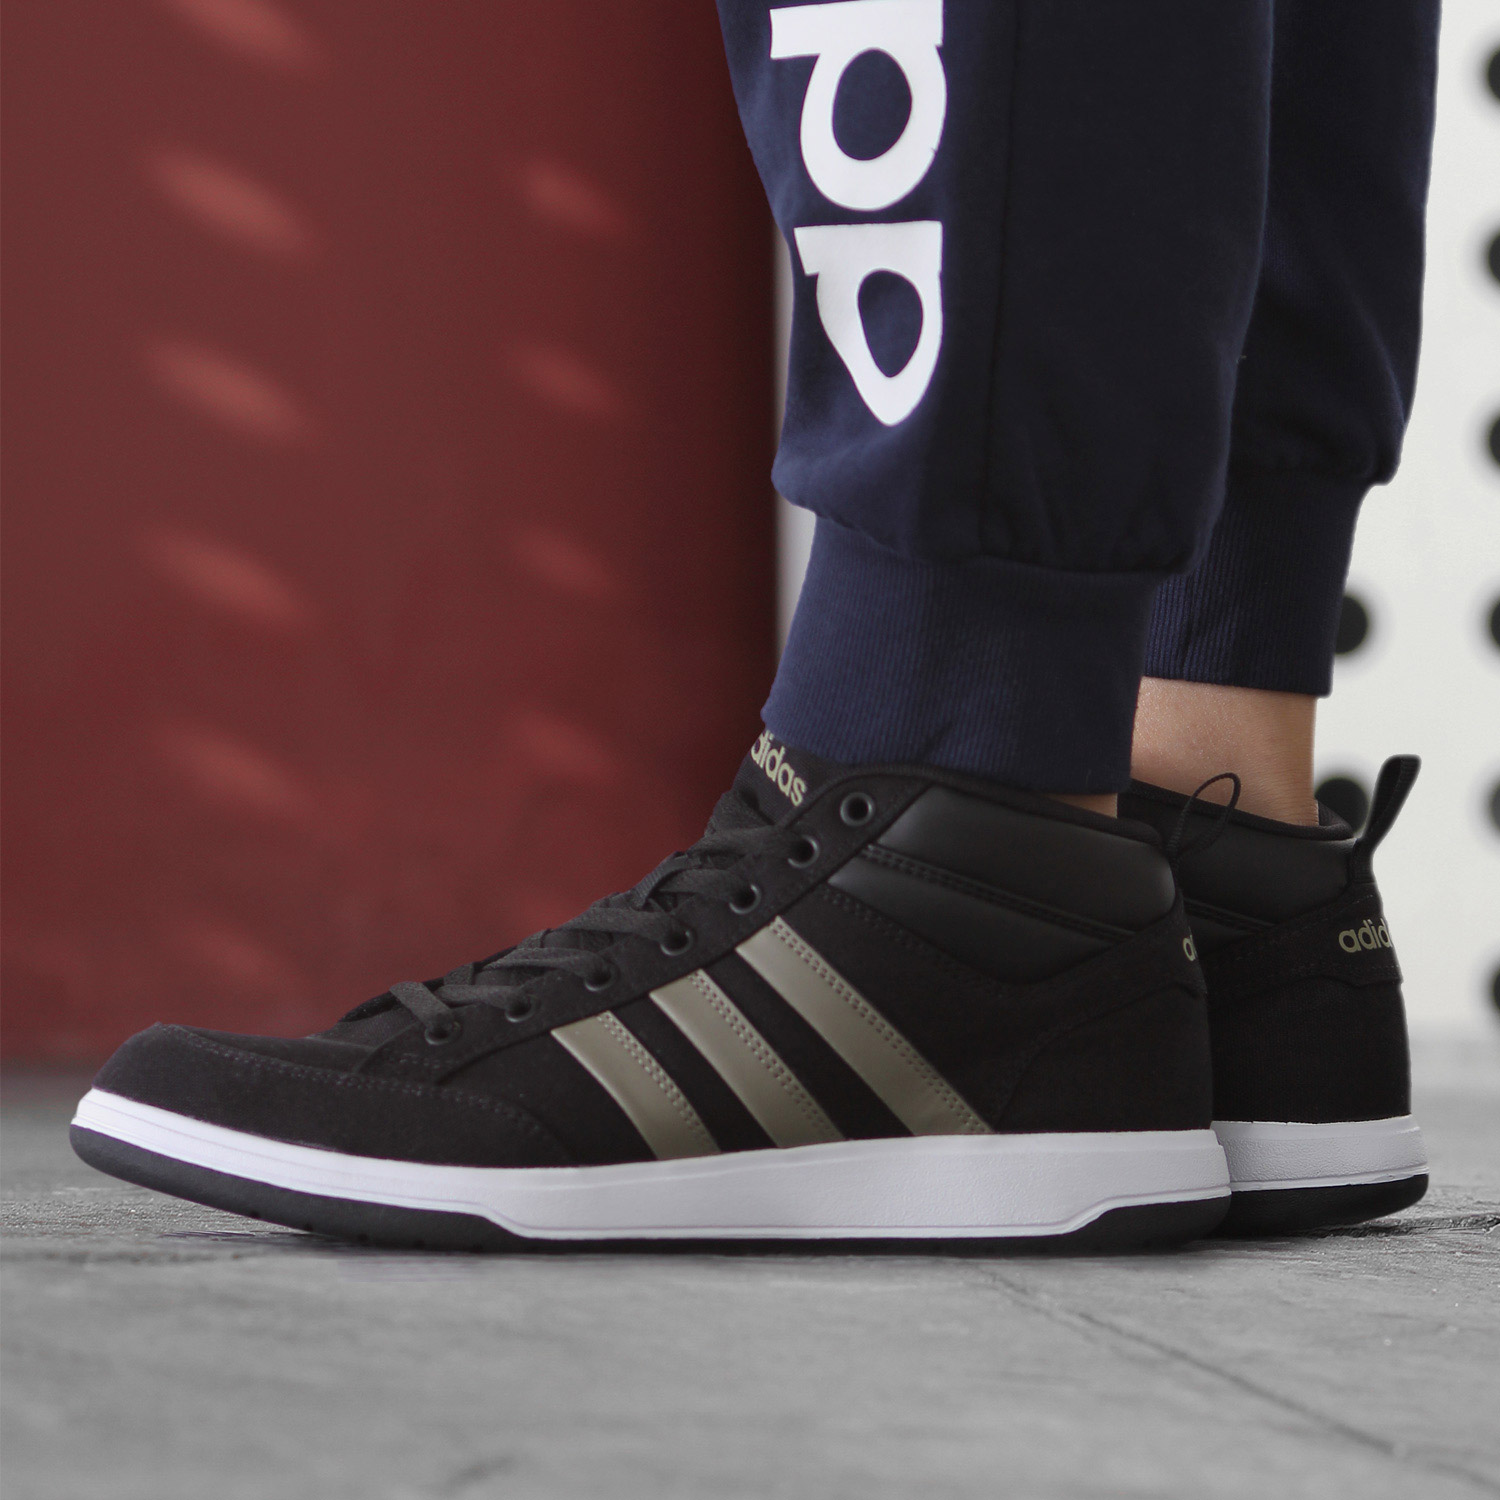 Adidas Adidas men casual shoes new shoes AW5063